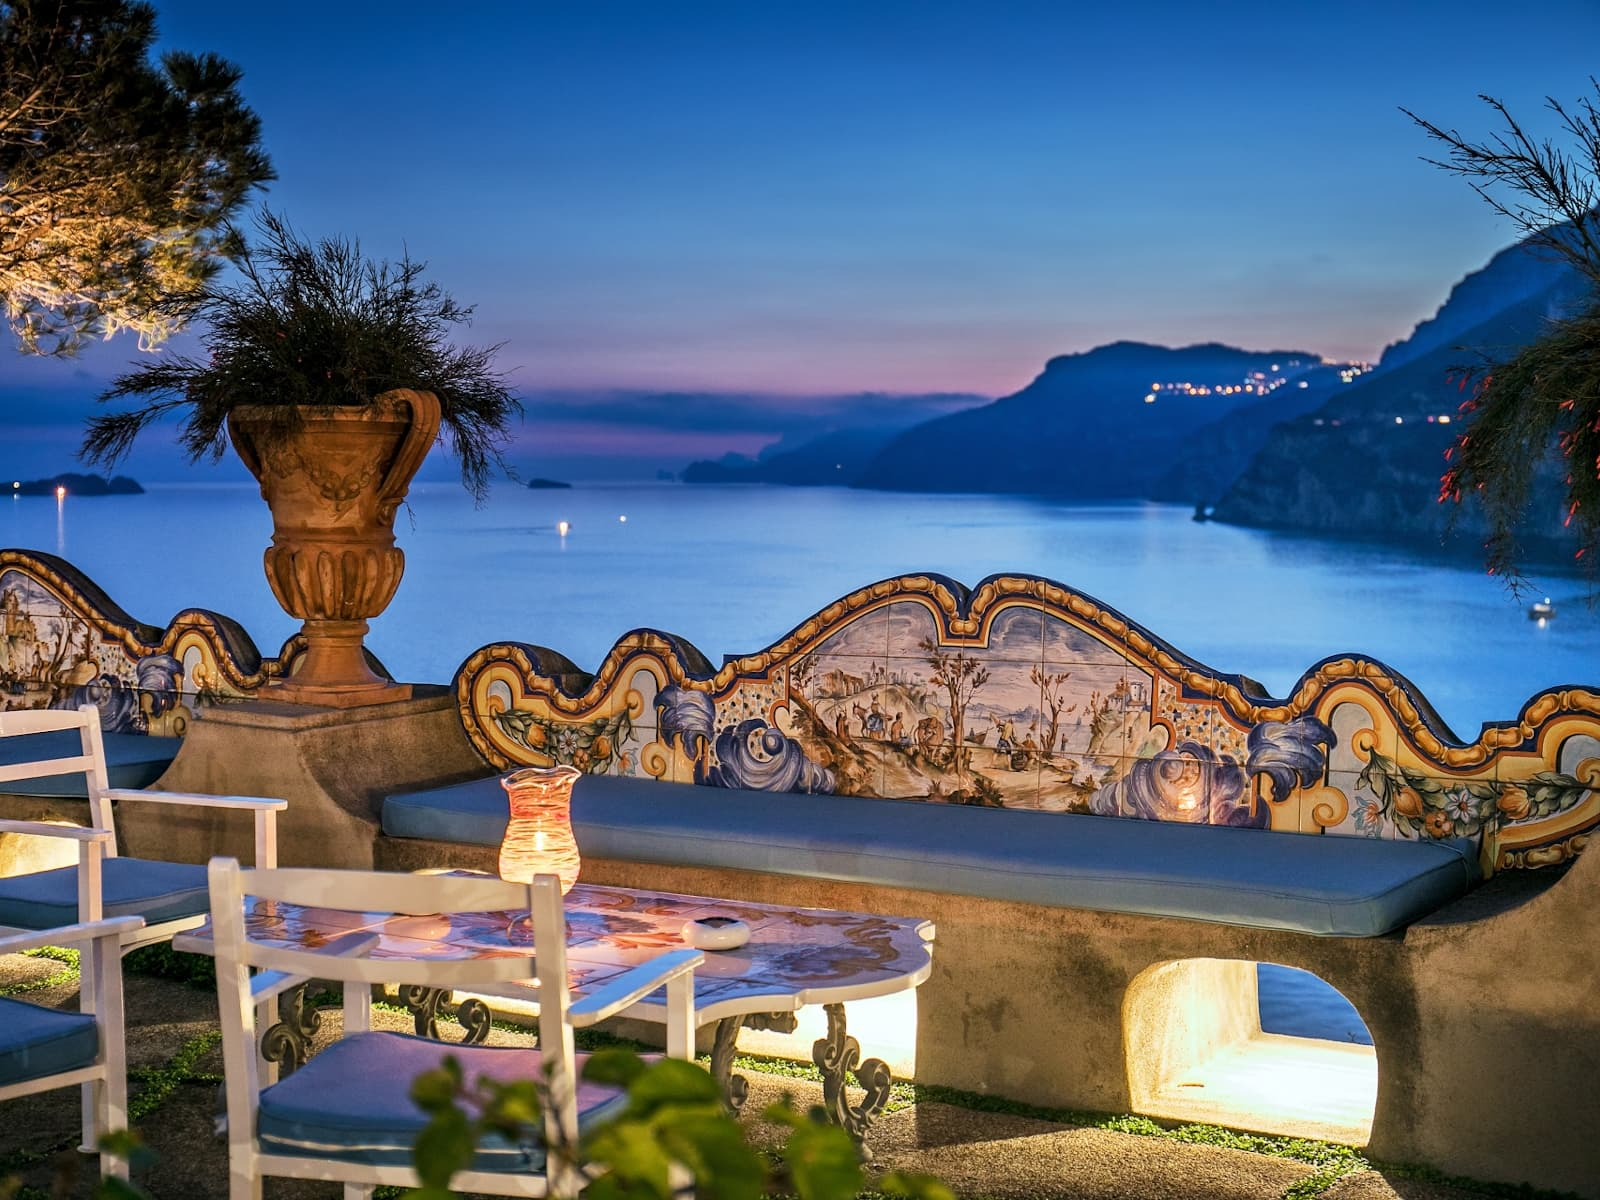 II San Pietro di Positano - one of the best tennis resorts for your tennis holidays in Italy